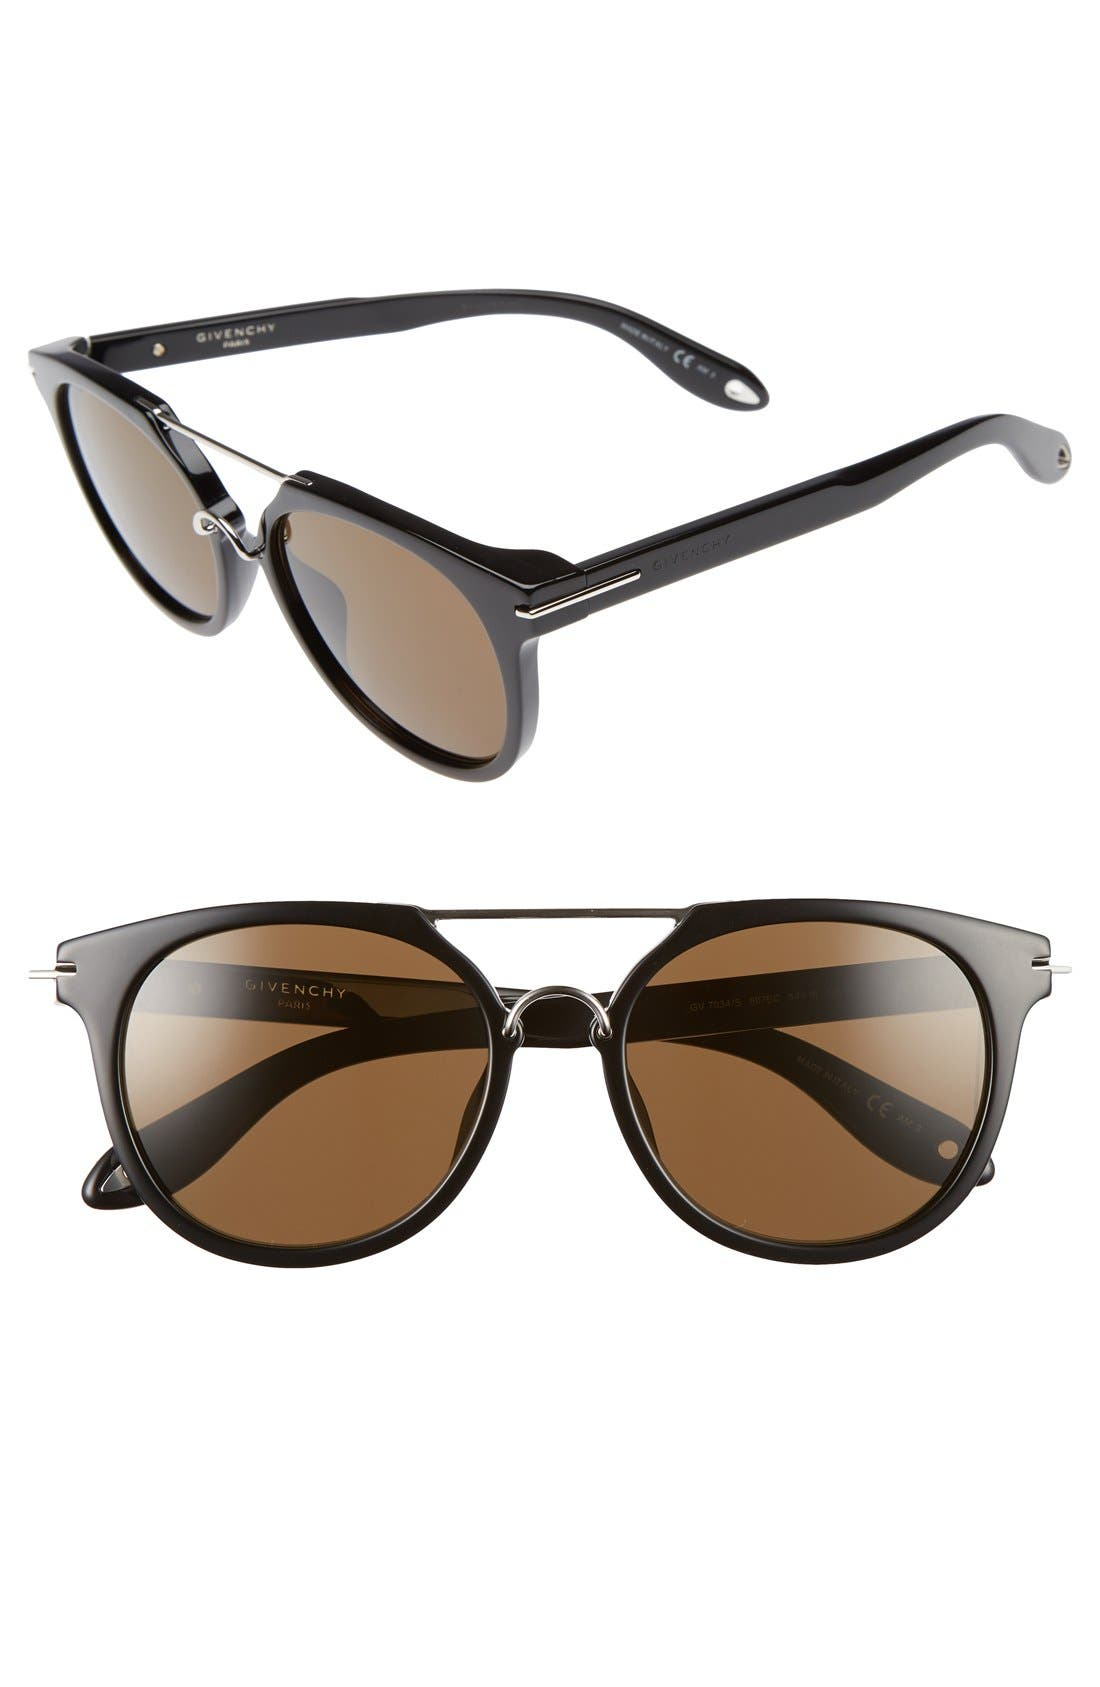 Main Image - Givenchy 7034/S 54mm Round Sunglasses